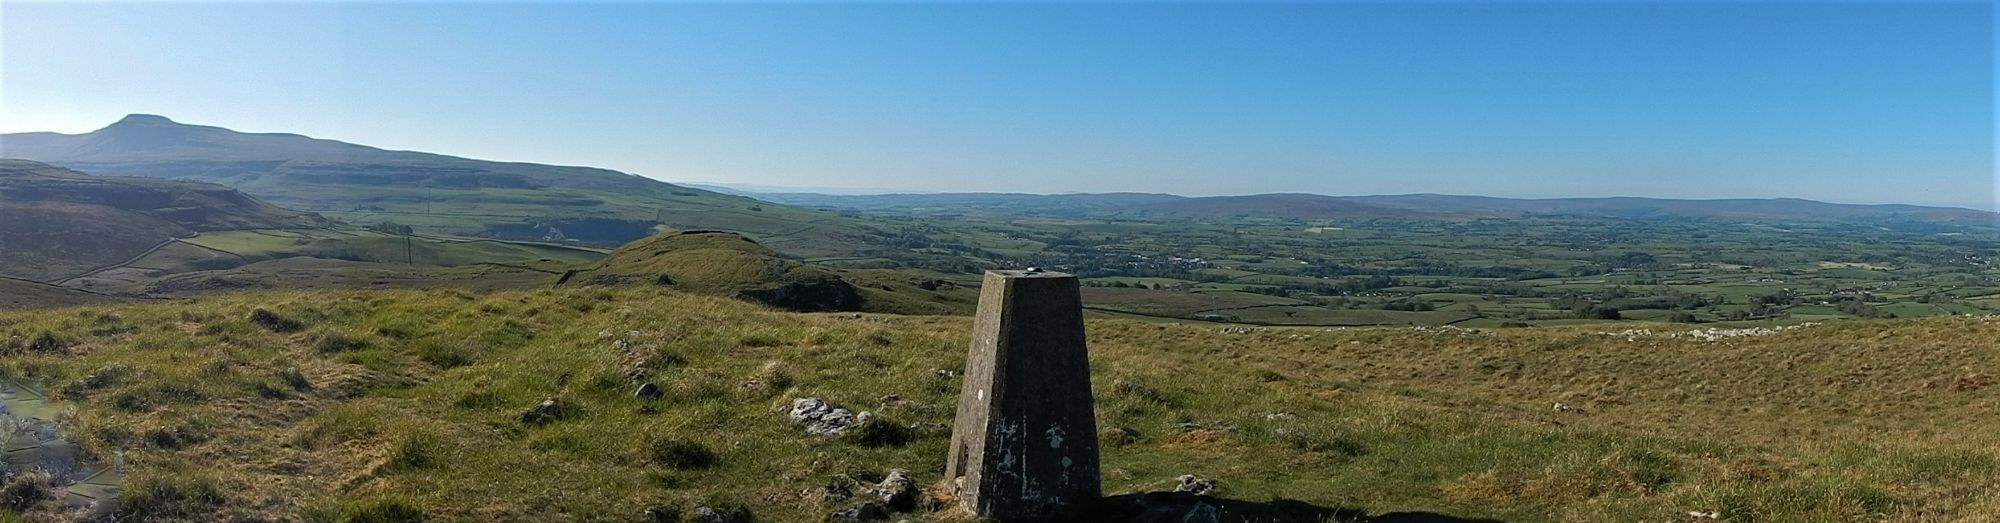 View from Tow Scar Trig Point just above the site